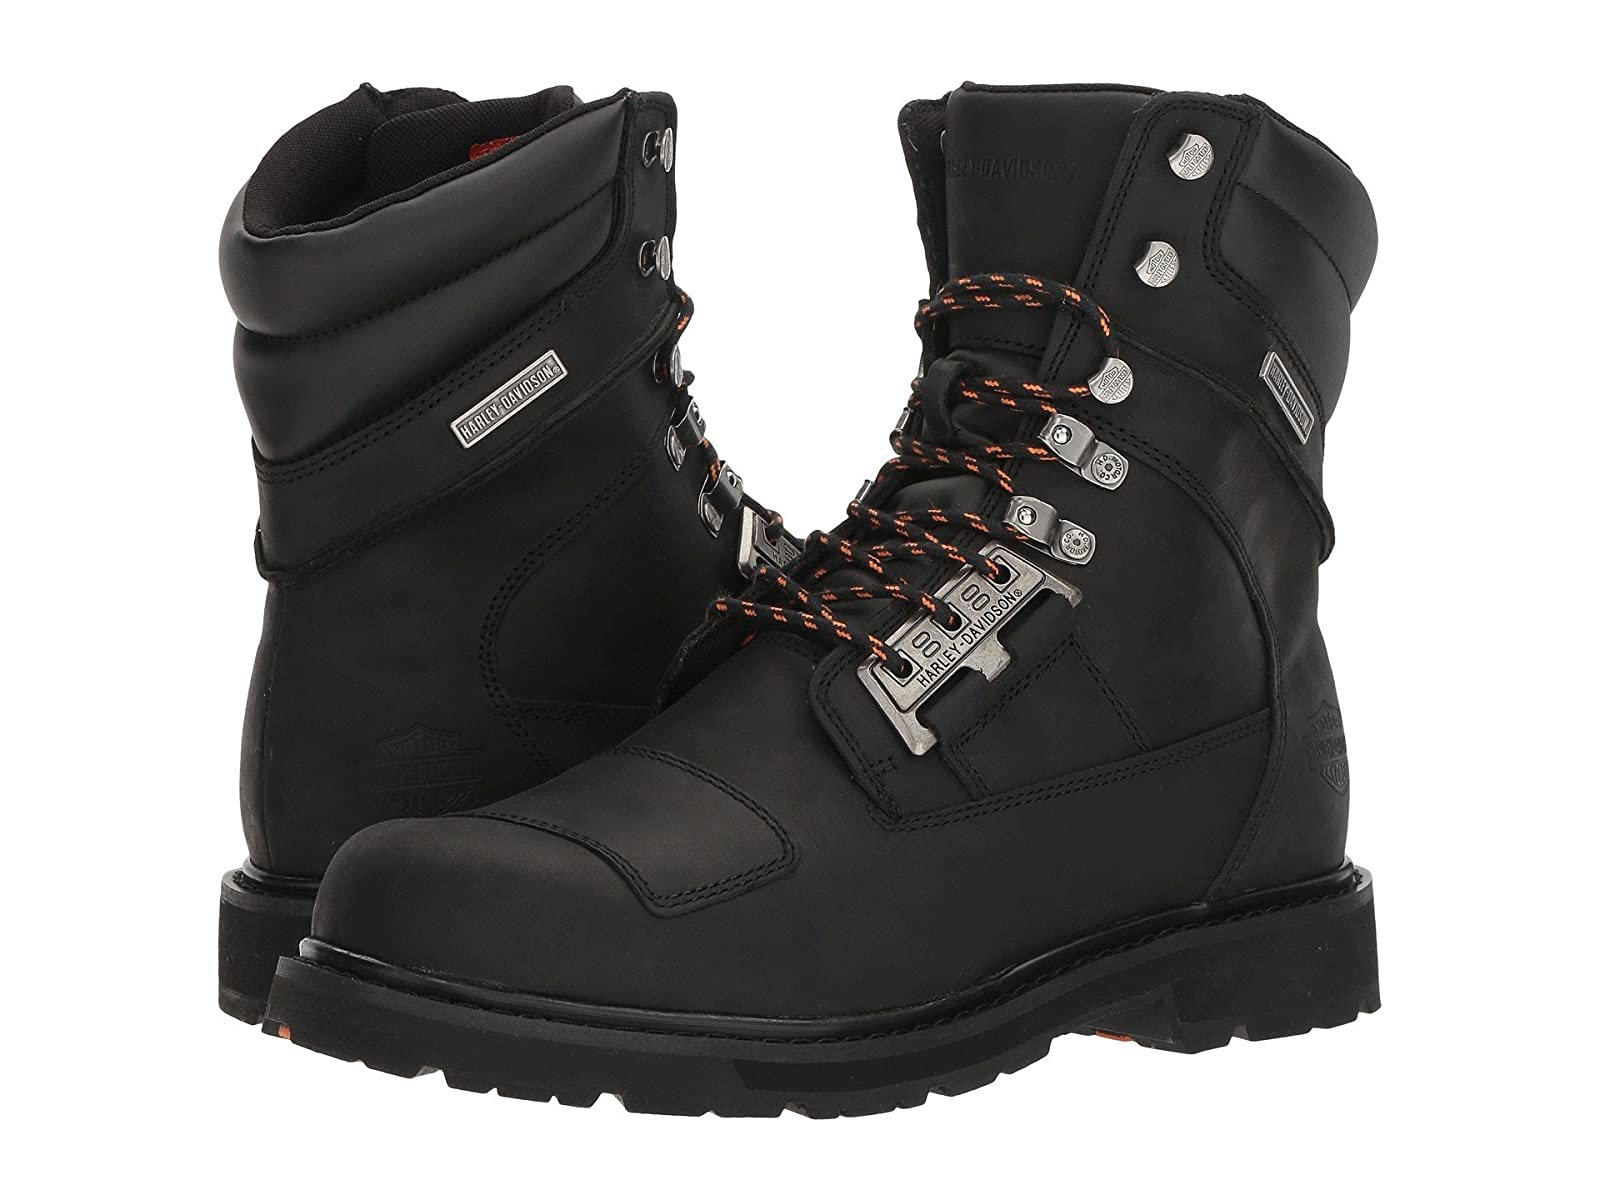 Harley-Davidson CoulterCheap and distinctive eye-catching shoes